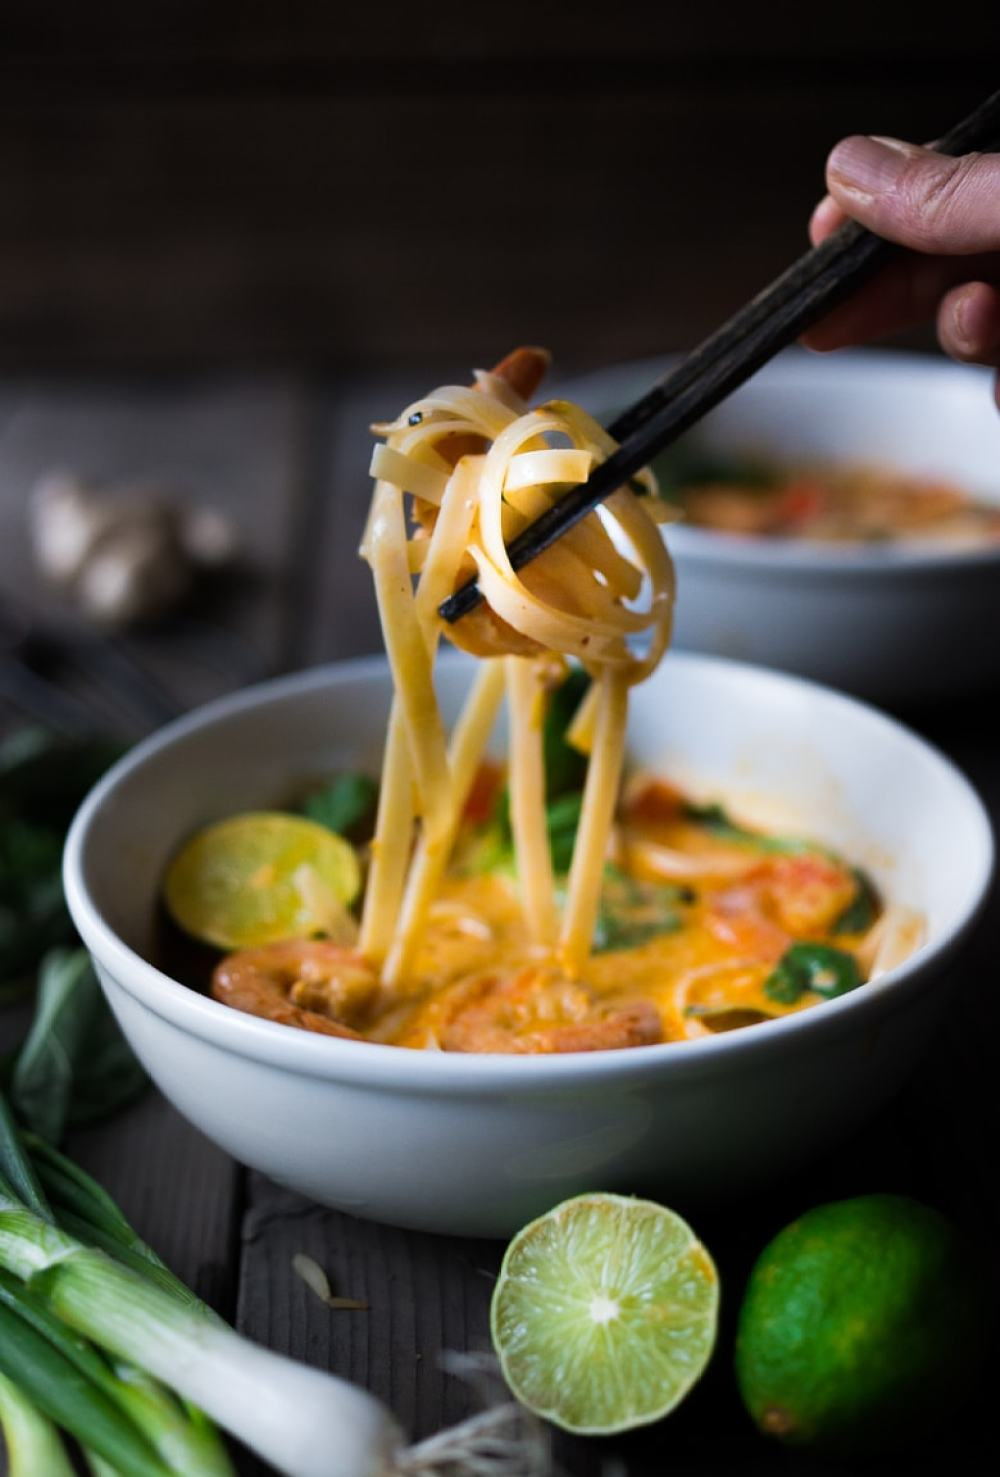 15 minute Coconut Curry Noodles plus 10 other FAST & FRESH Weeknight dinners for Back-to-School nights | www.feastingathome.com